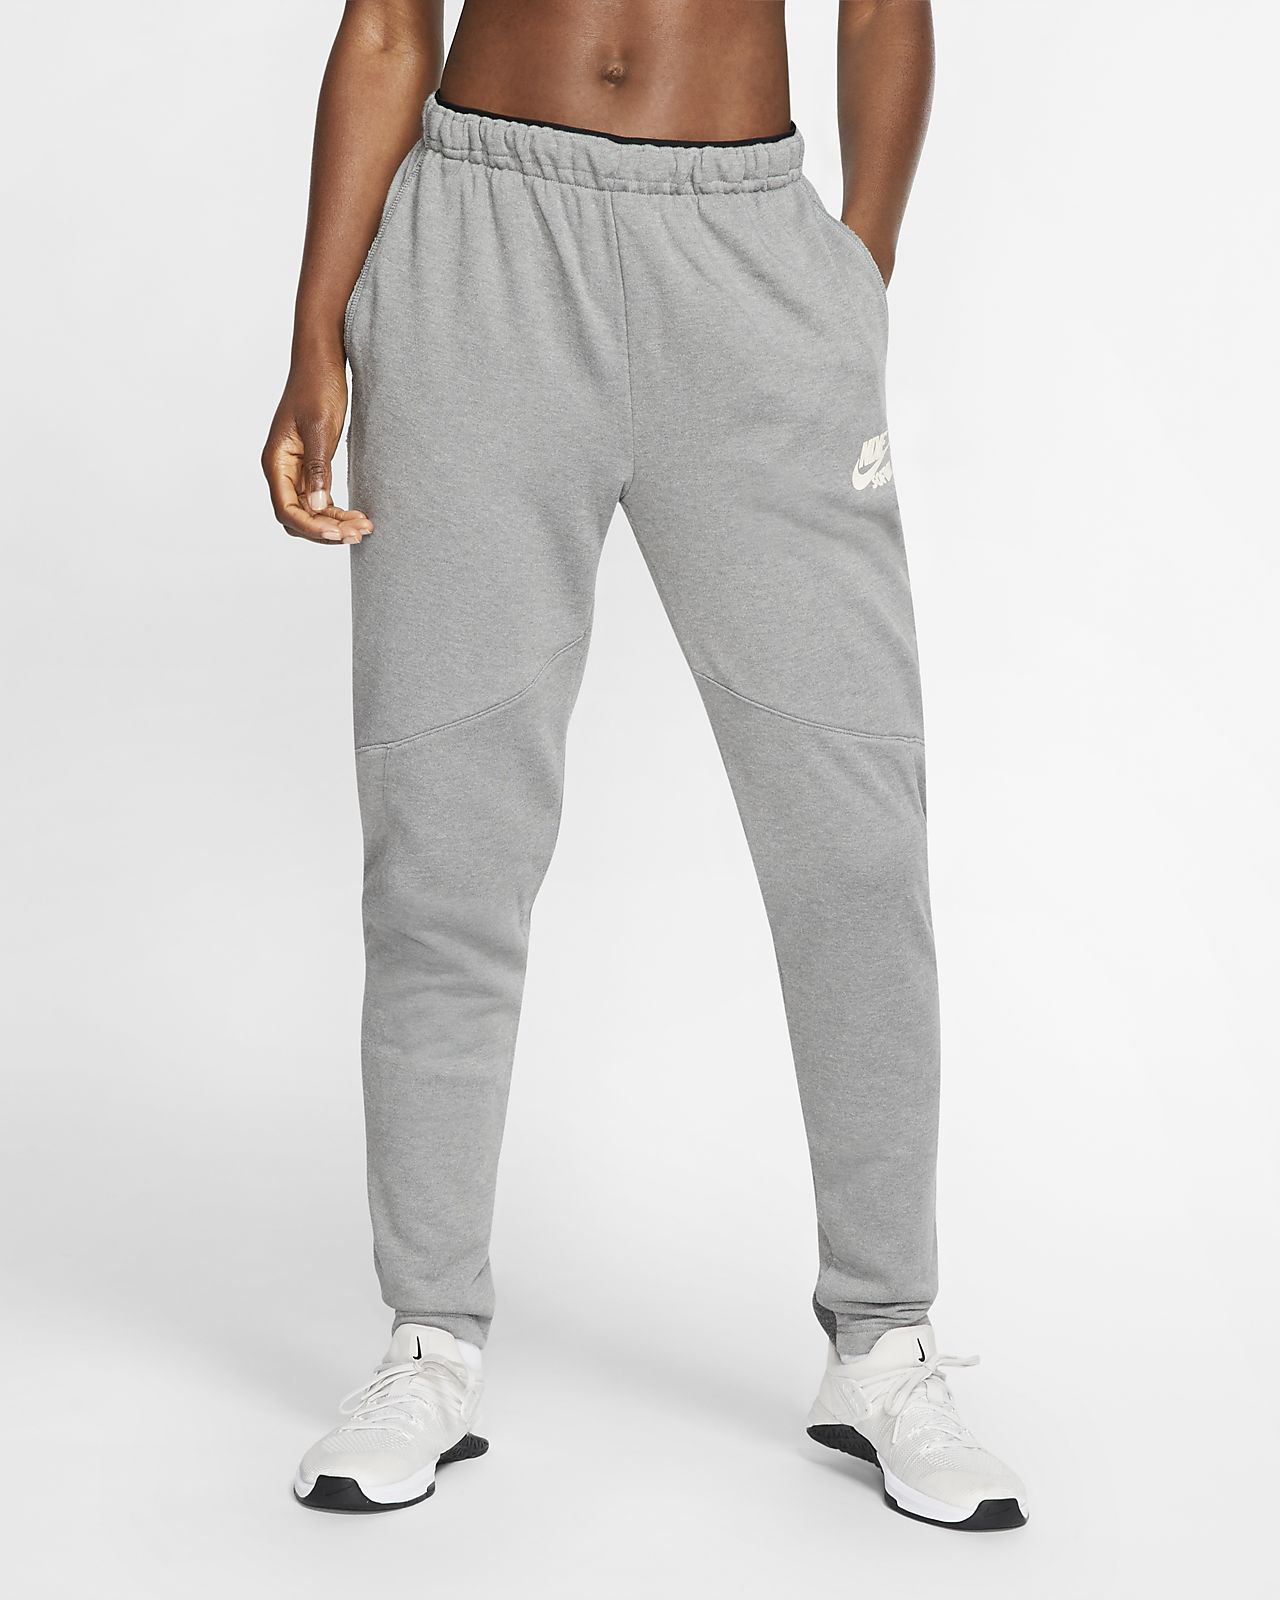 Nike Women\u0027s Softball Joggers